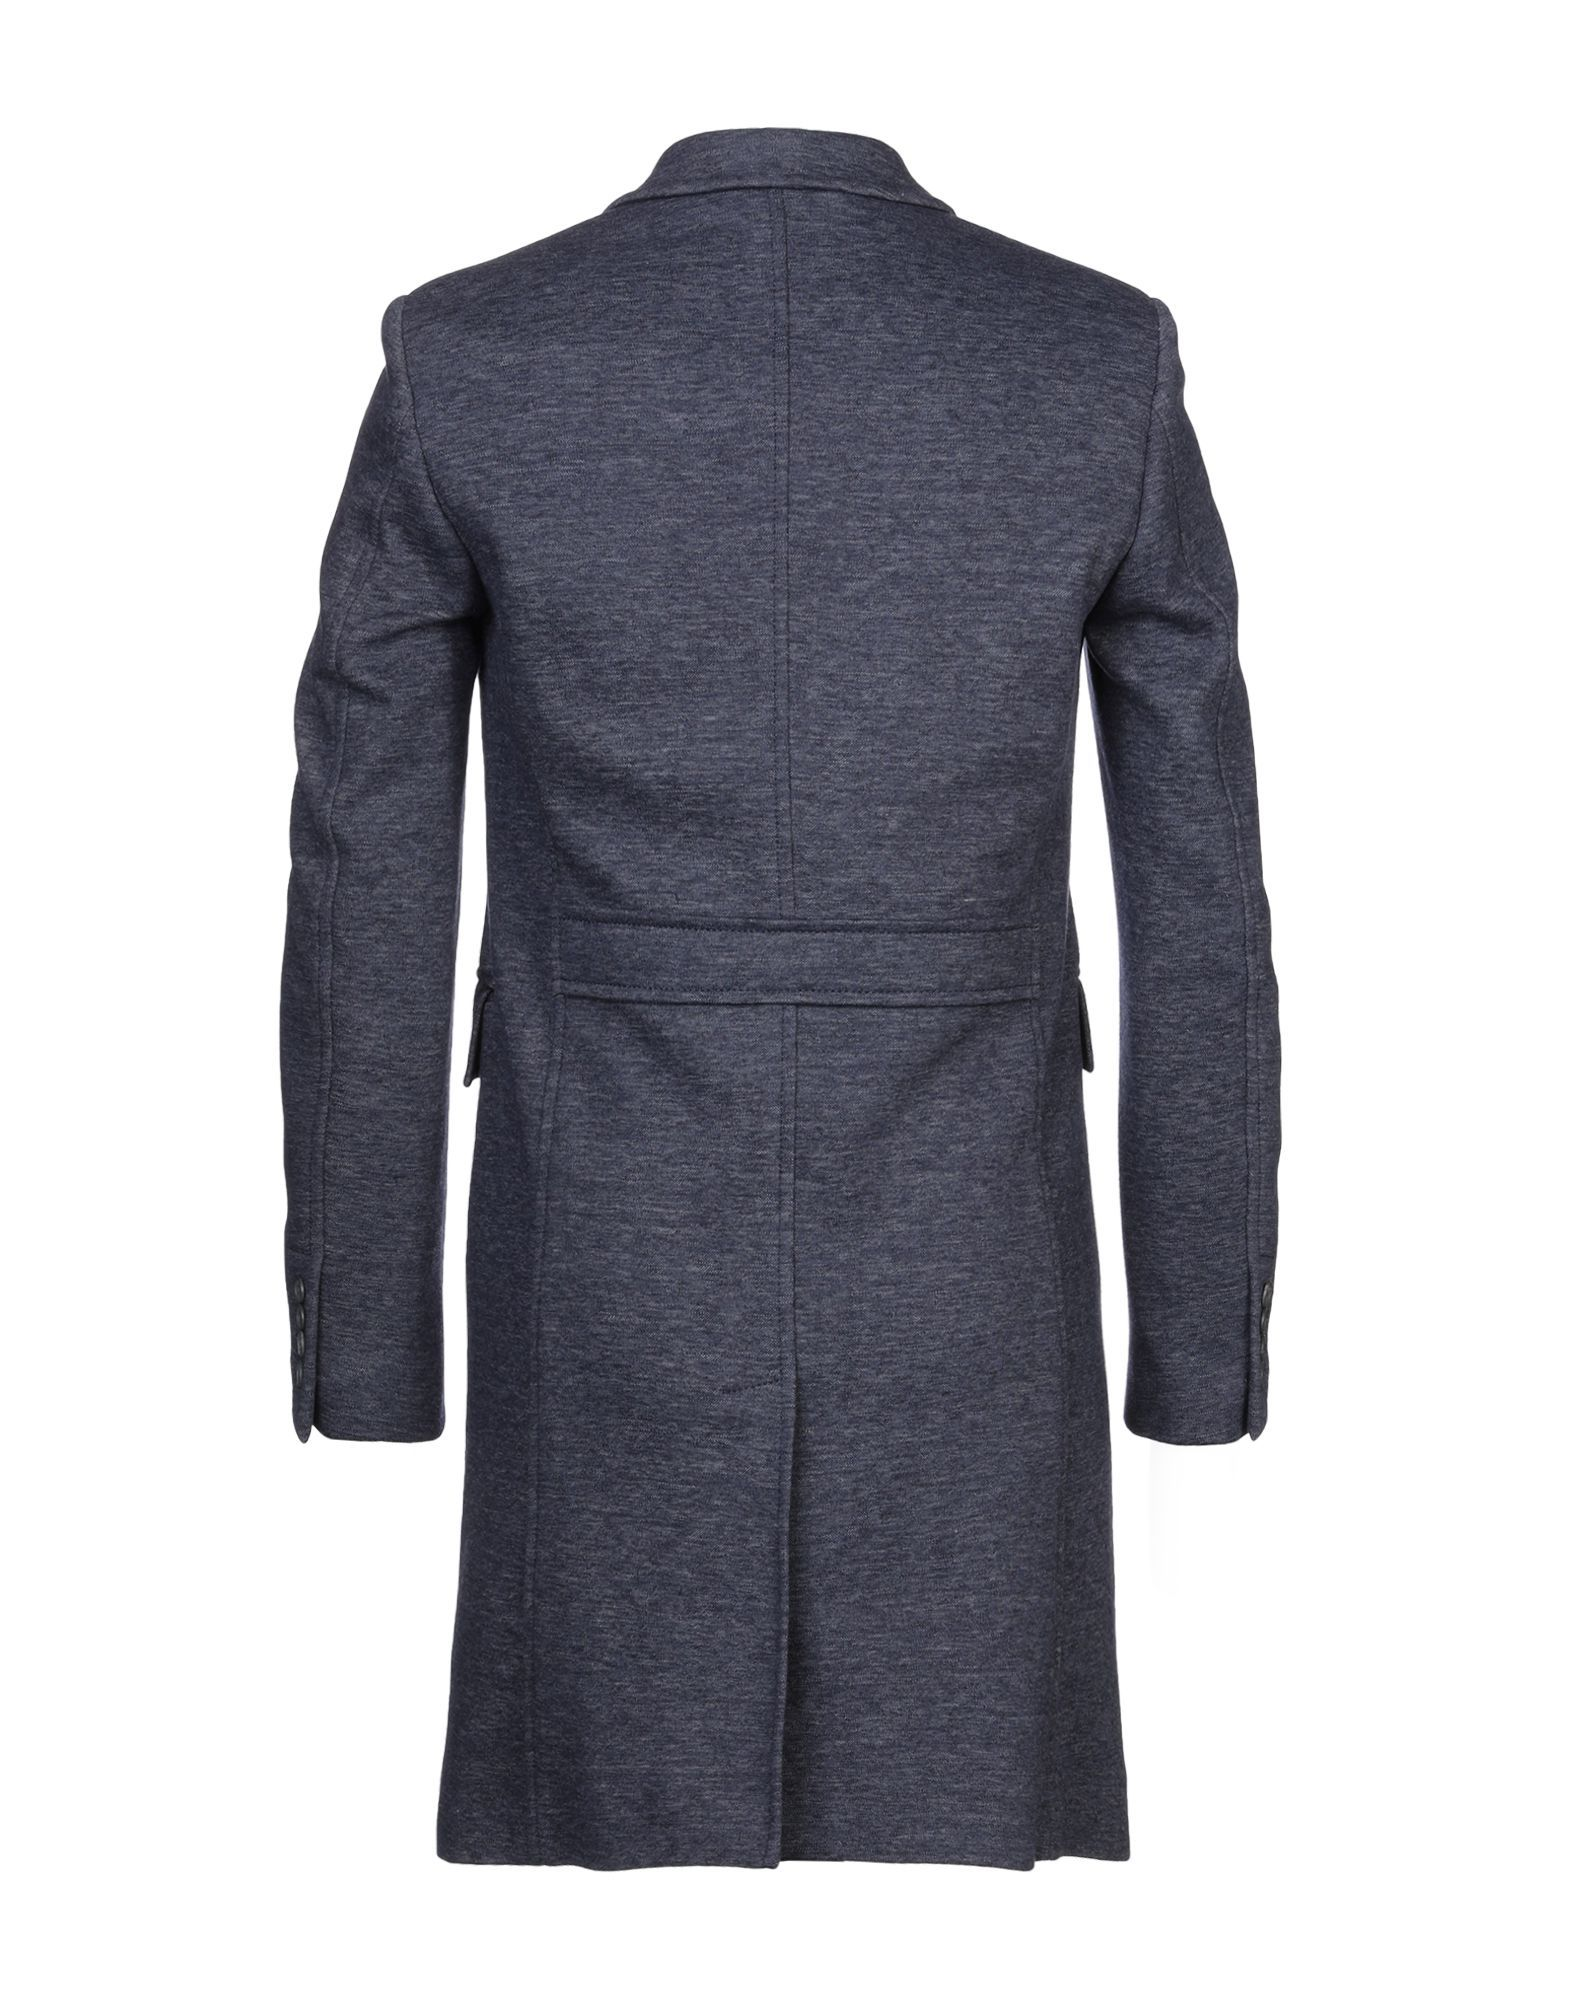 Burberry Dark Blue Single Breasted Coat